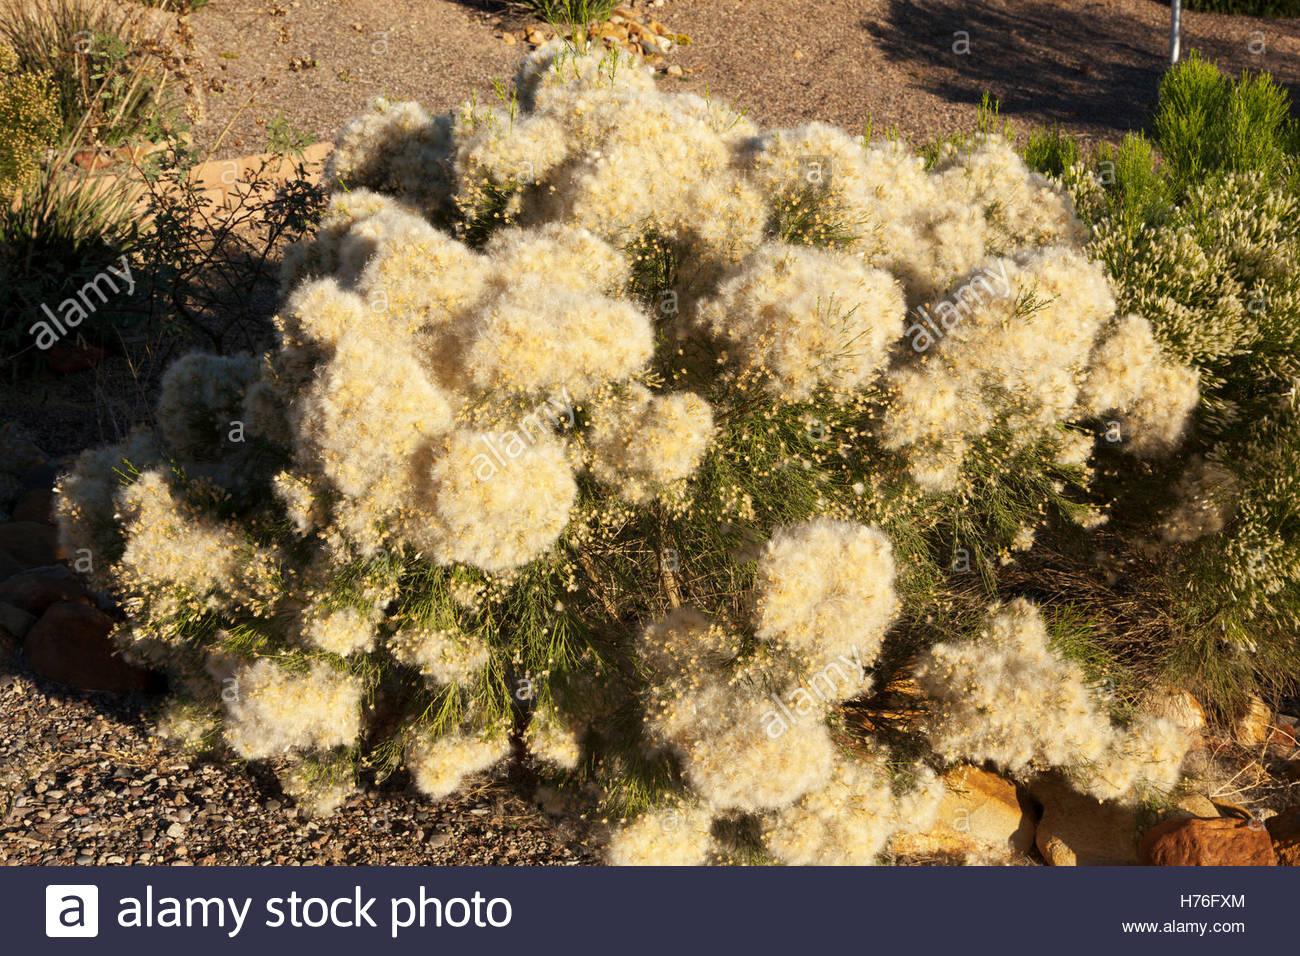 desert-broom-baccharis-sarothroides-male-arizona-H76FXM.jpg